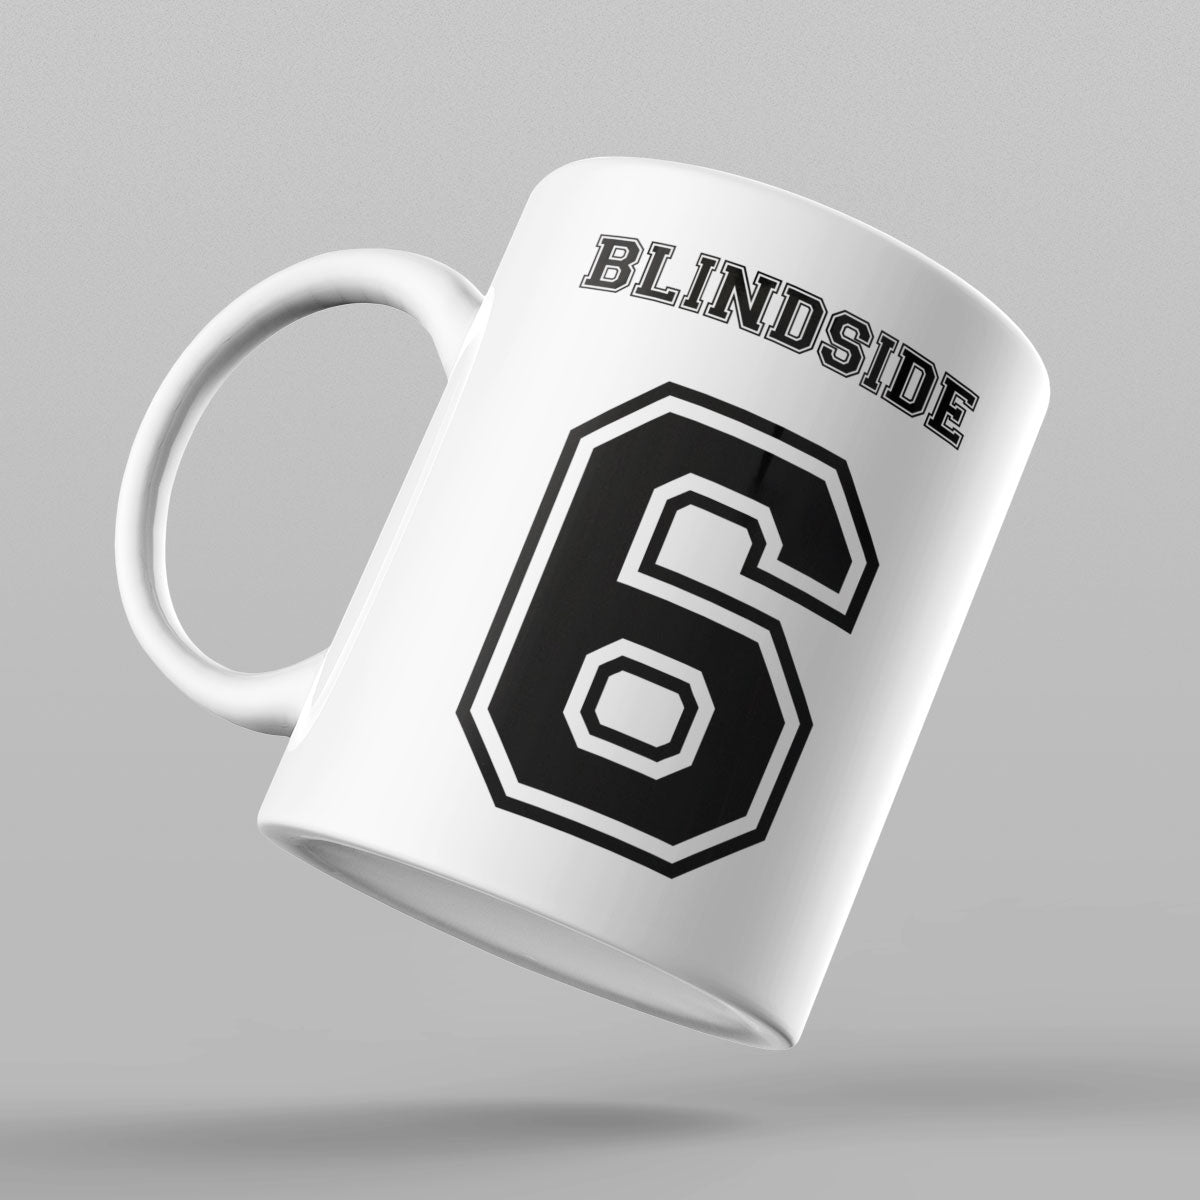 Blindside Number 6 Rugby Mug - First XV rugbystuff.com